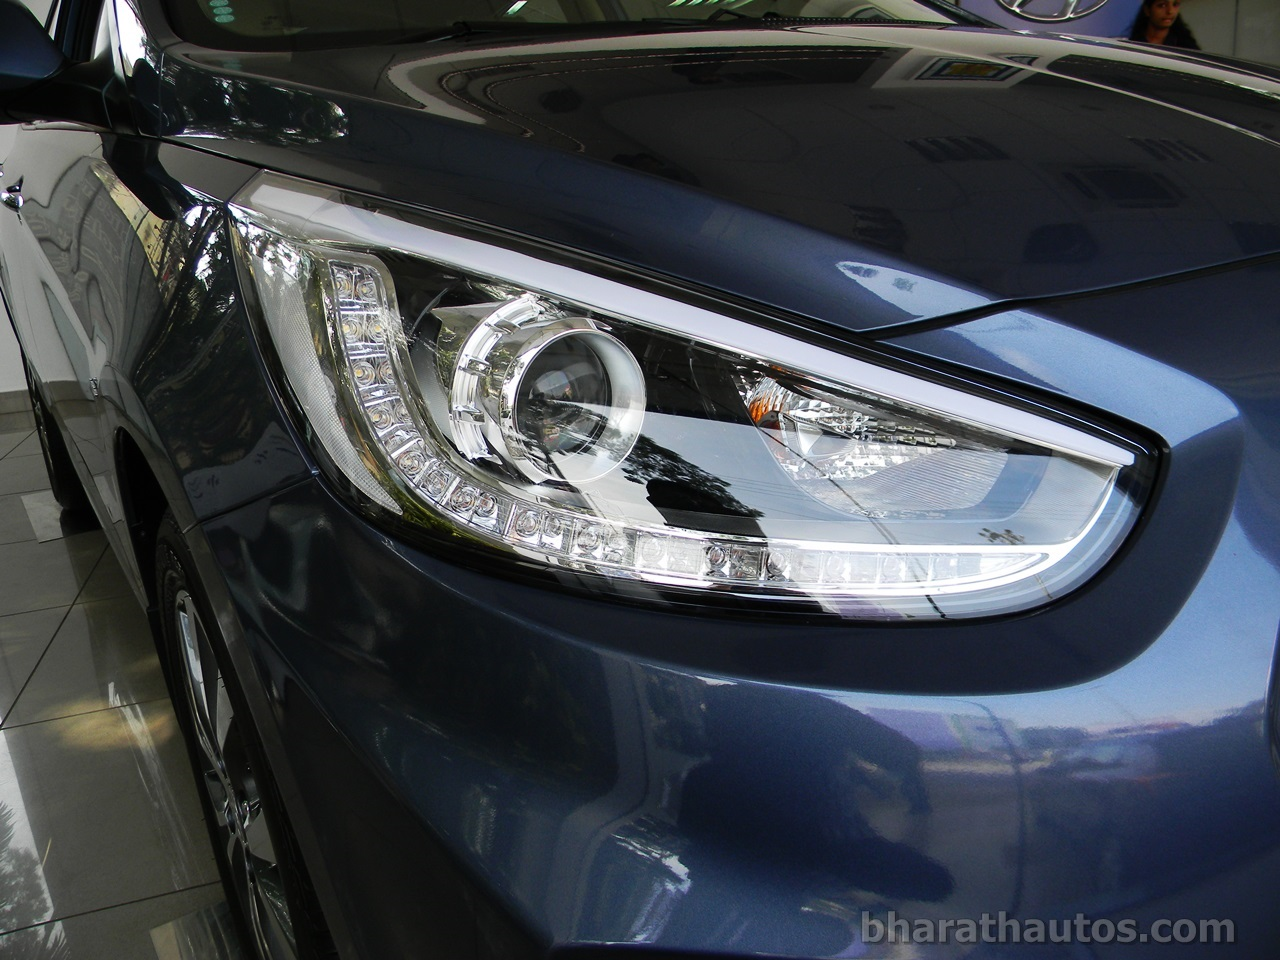 Fluidic hyundai verna seen with projector headlamps and led drls